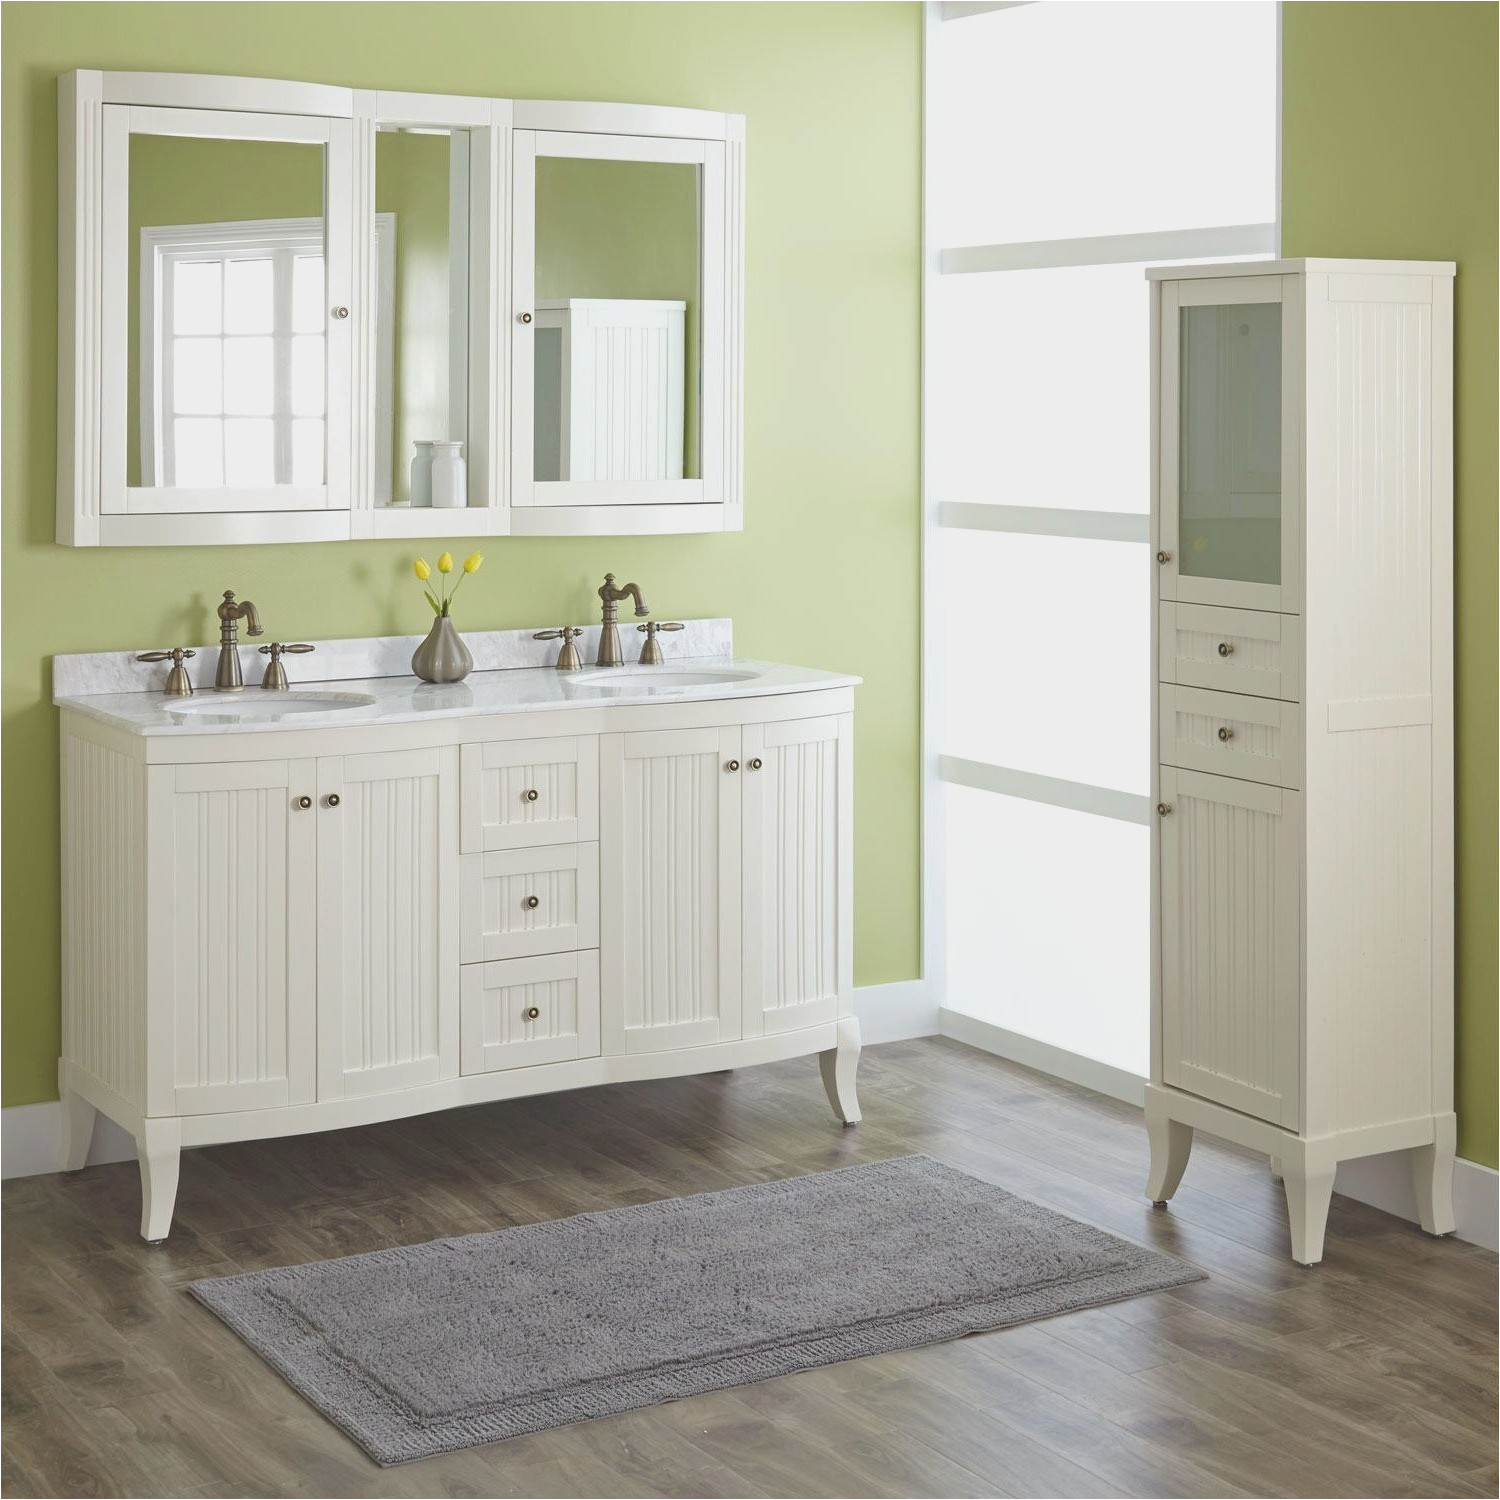 Glamorous Home Design. Fresh Bathroom Vanities Ikea: Bathroom Vanities Ikea with Bathroom Vanities Ikea